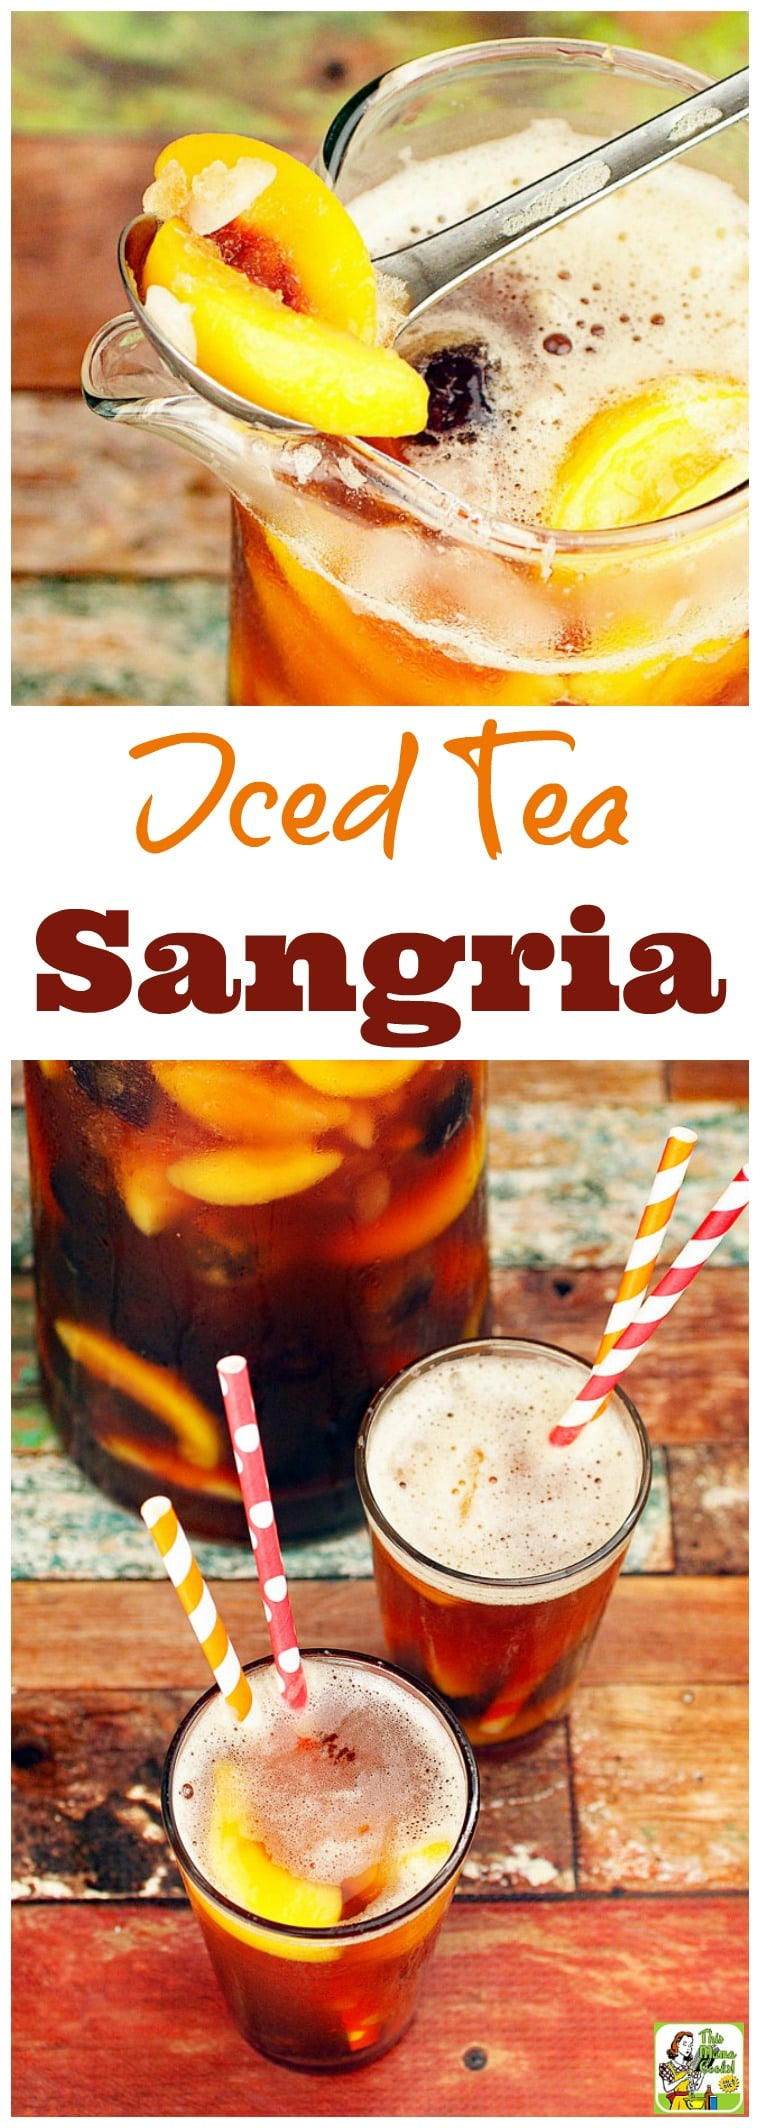 Are you looking for an easy, healthy iced tea drink? Or a party mocktail drink that's low calorie? Click to get this Iced Tea Sangria recipe. It's low calorie and is made with frozen, sliced fruit and no-calorie, natural sweetener.